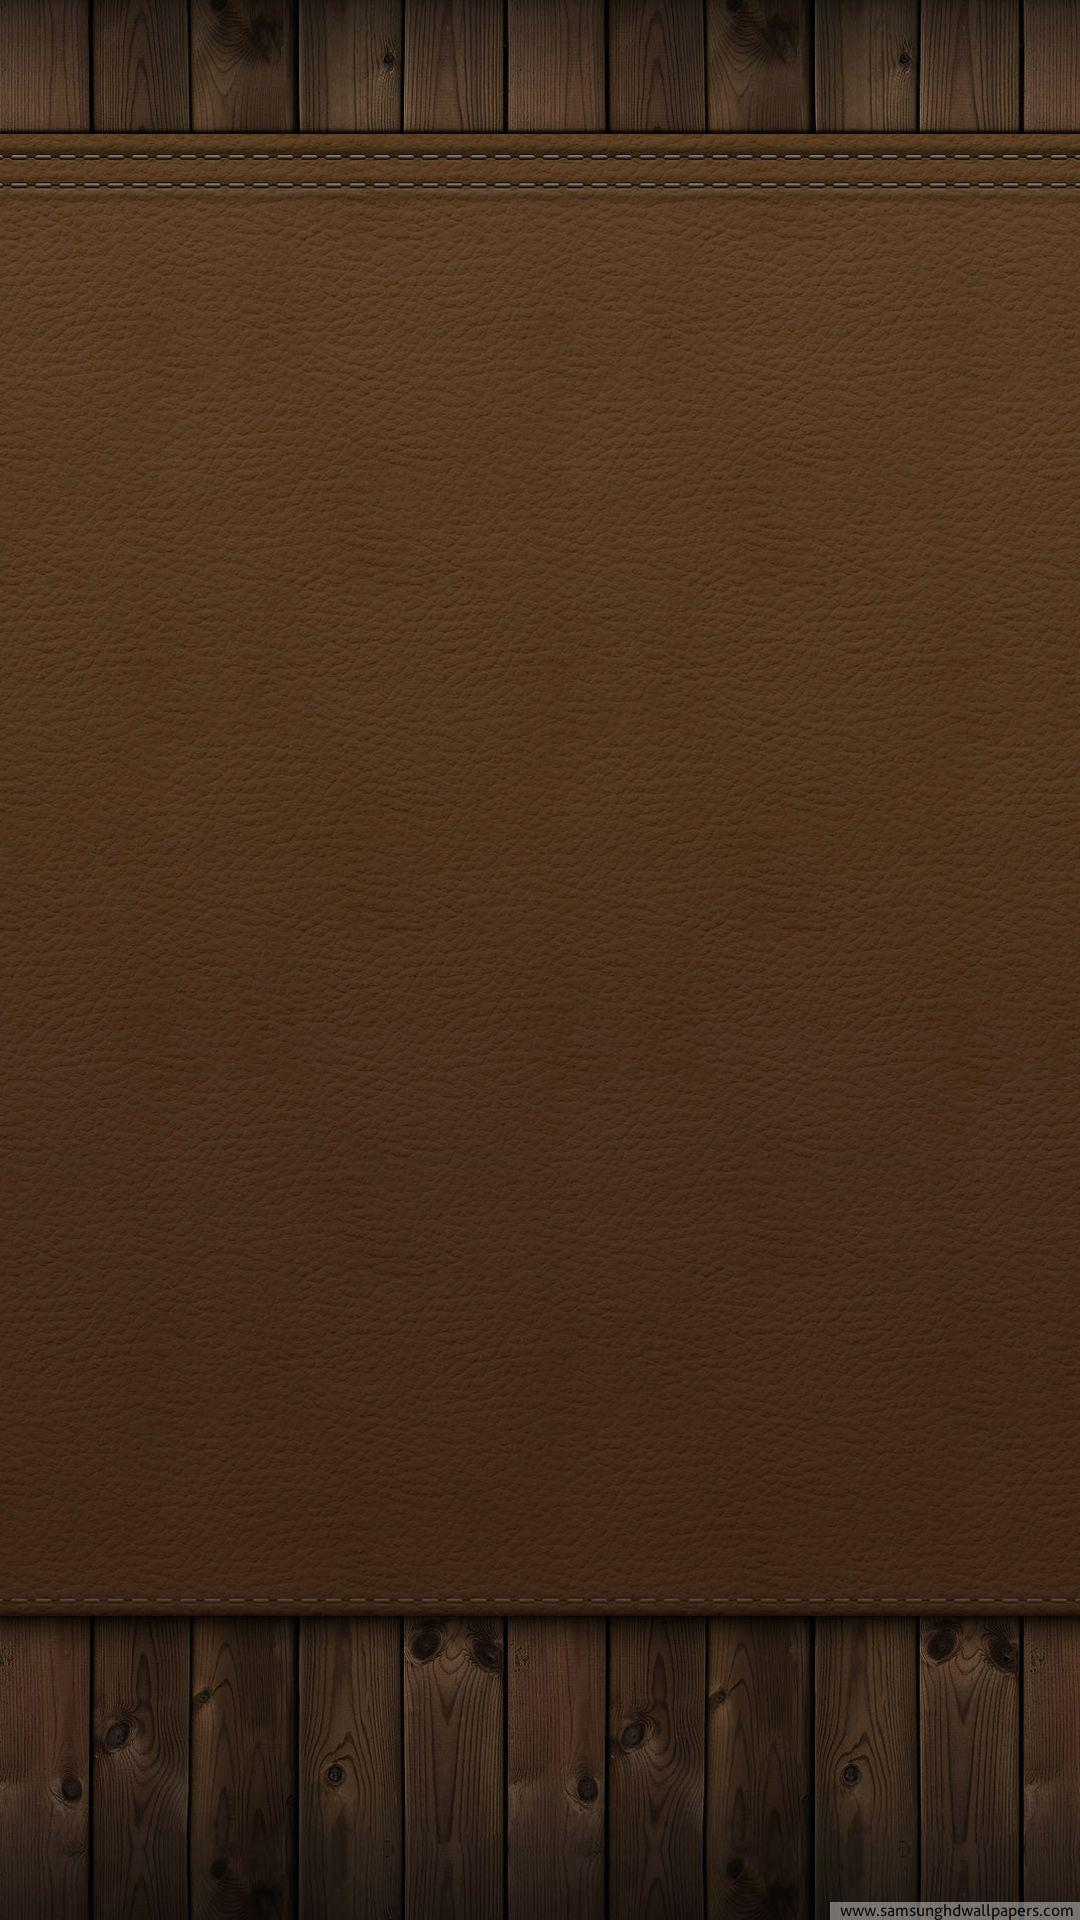 Wood and leather wall HD Samsung S4 wallpaper 1080x1920